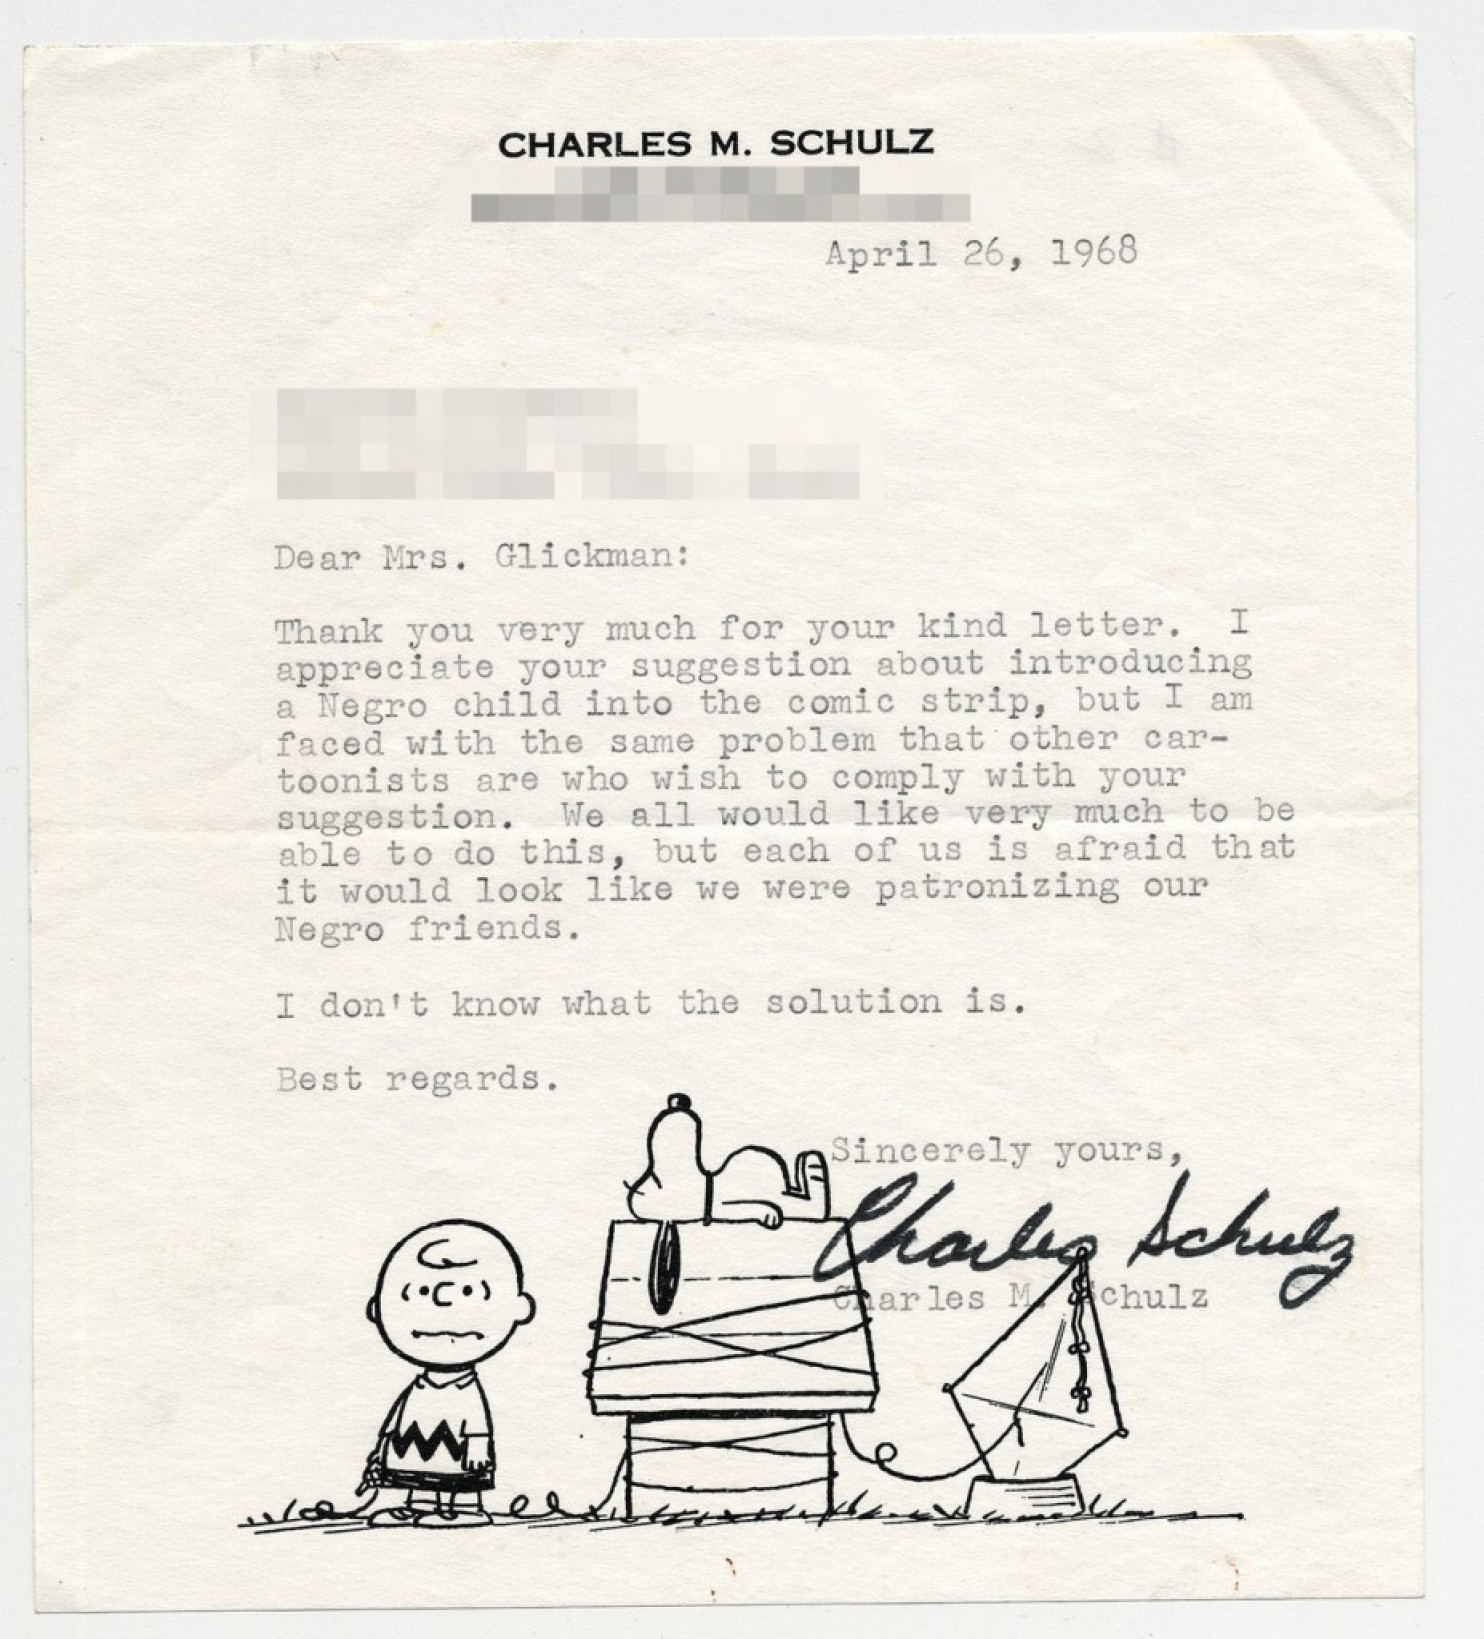 Letter from Charles M Schultz